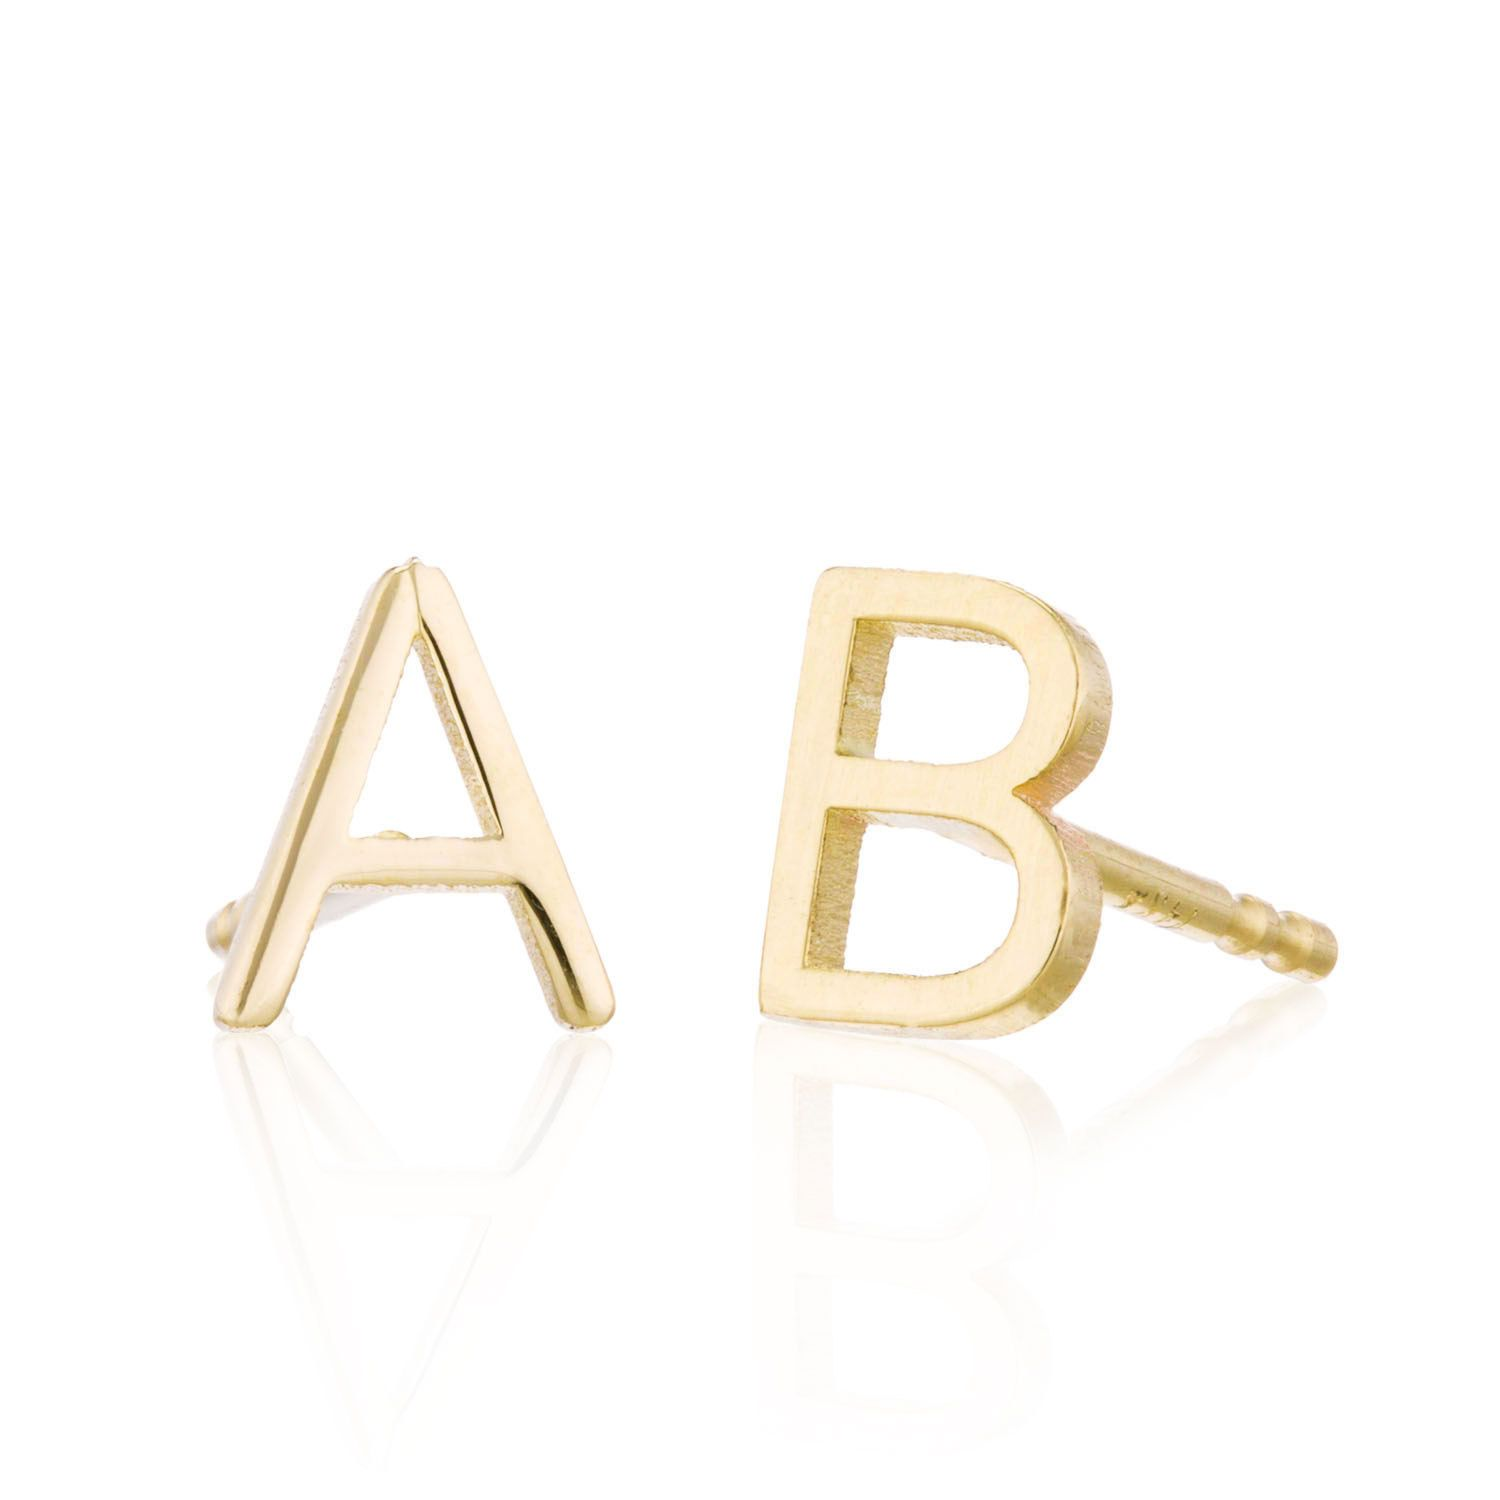 150 00 Initial Earrings Solid 14k Gold Studs Letter Personalized Monogram